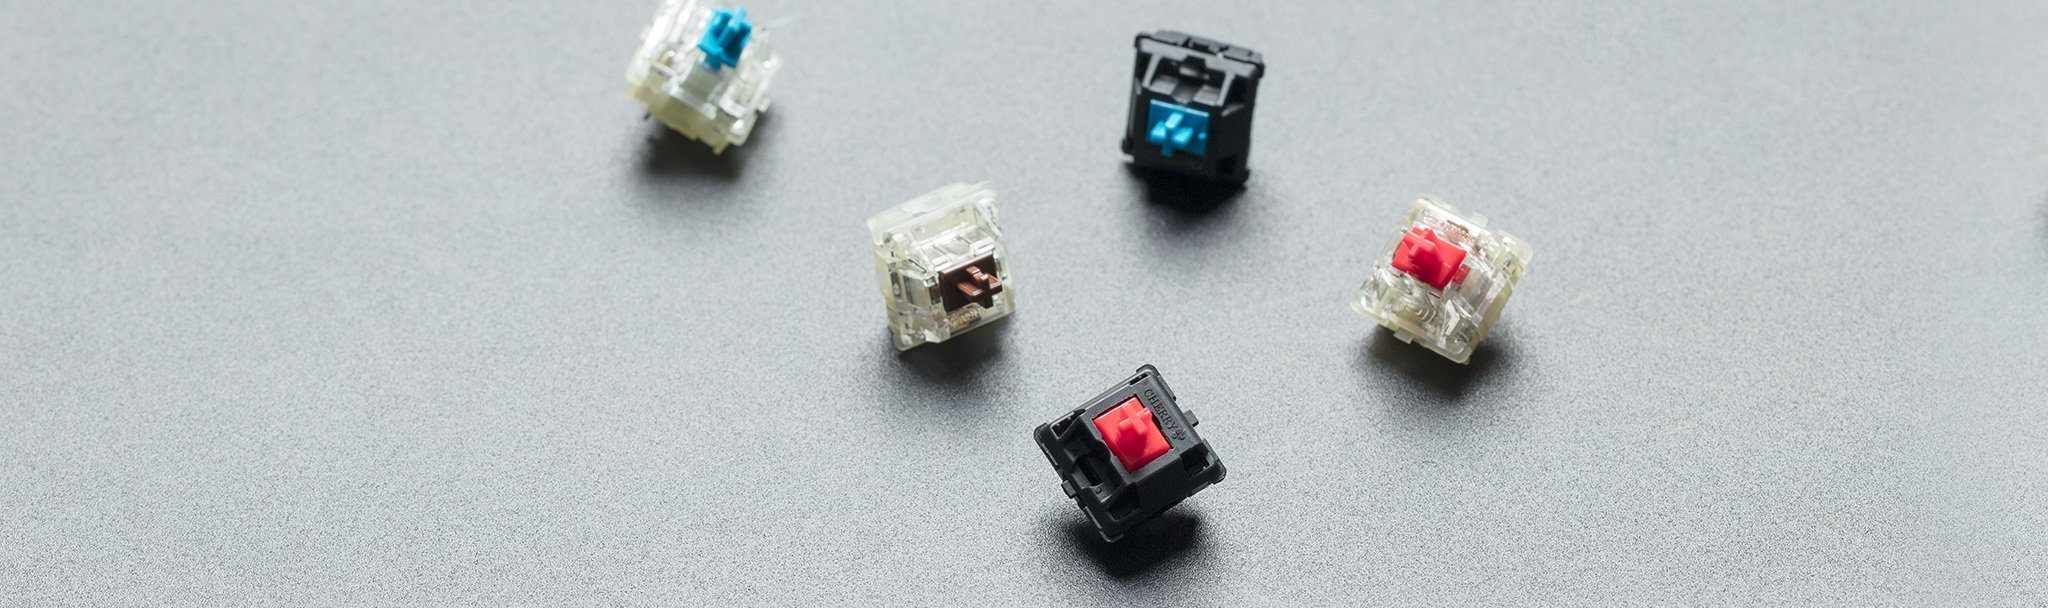 CHERRY® MX mechanical keyswitches for proven reliability